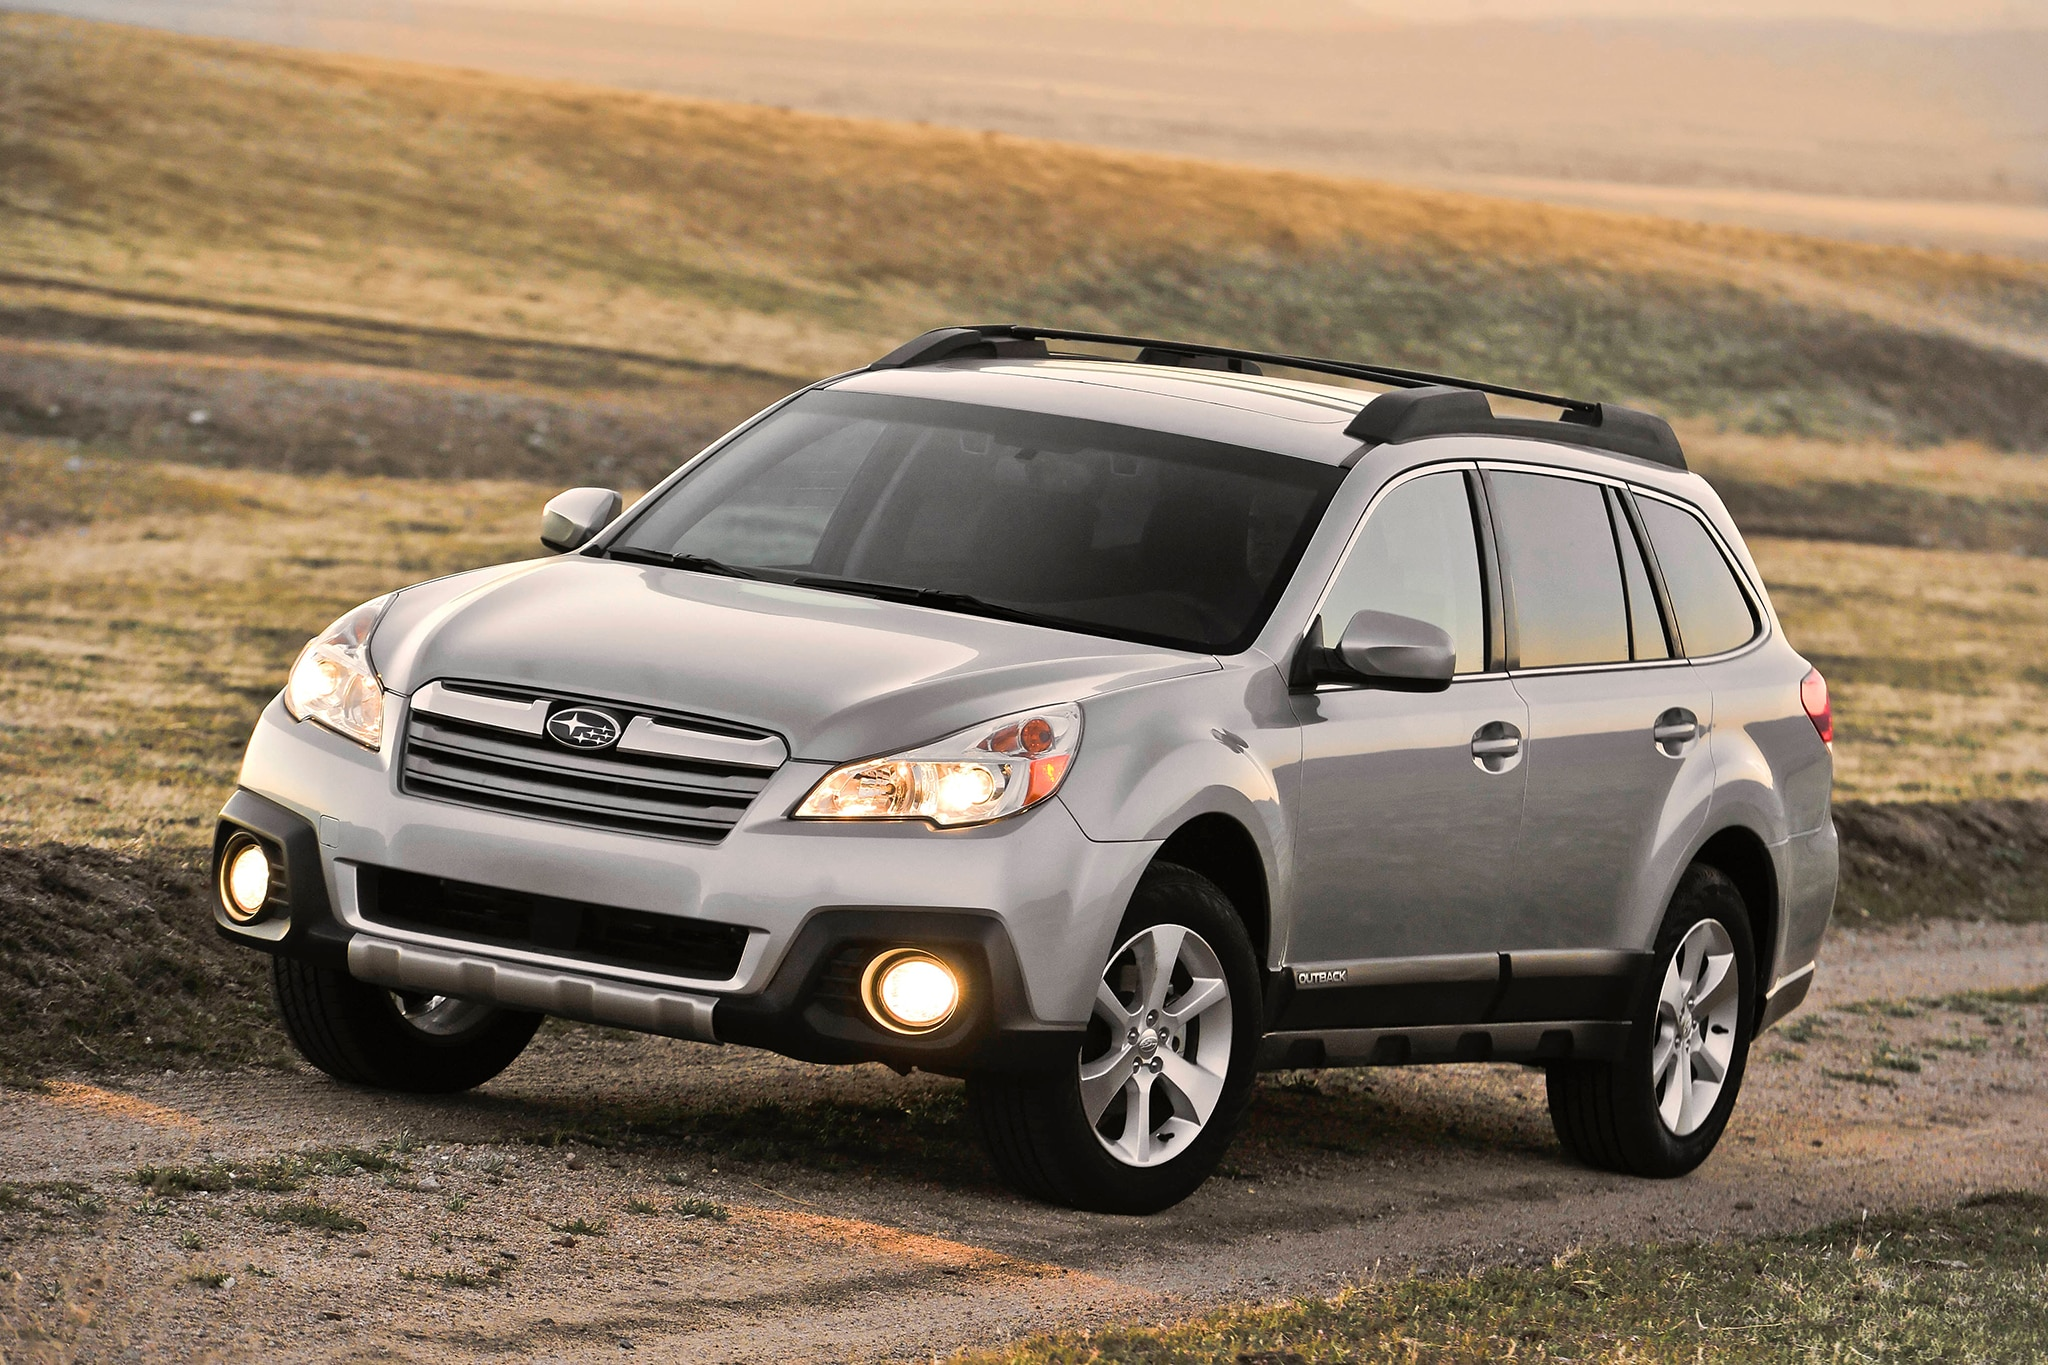 2014 Subaru Outback Three Quarters1